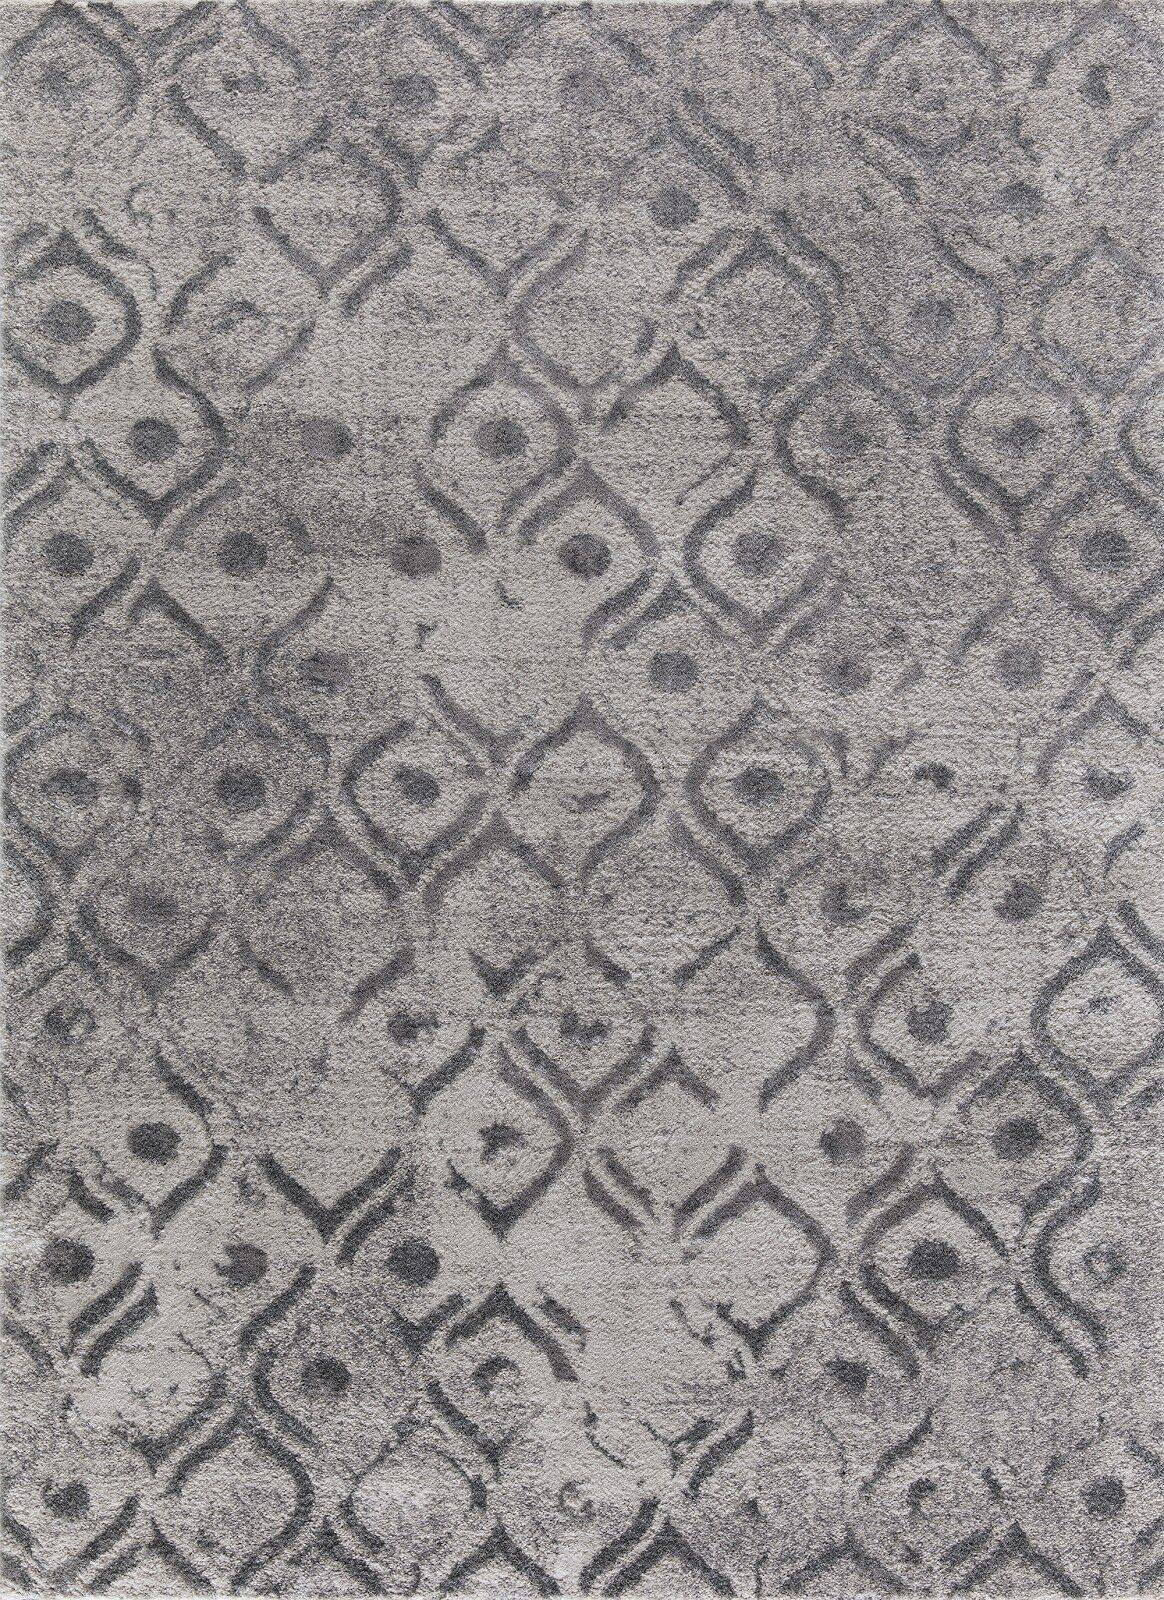 Nickols Gray Area Rug Rug Size: Rectangle 7'8